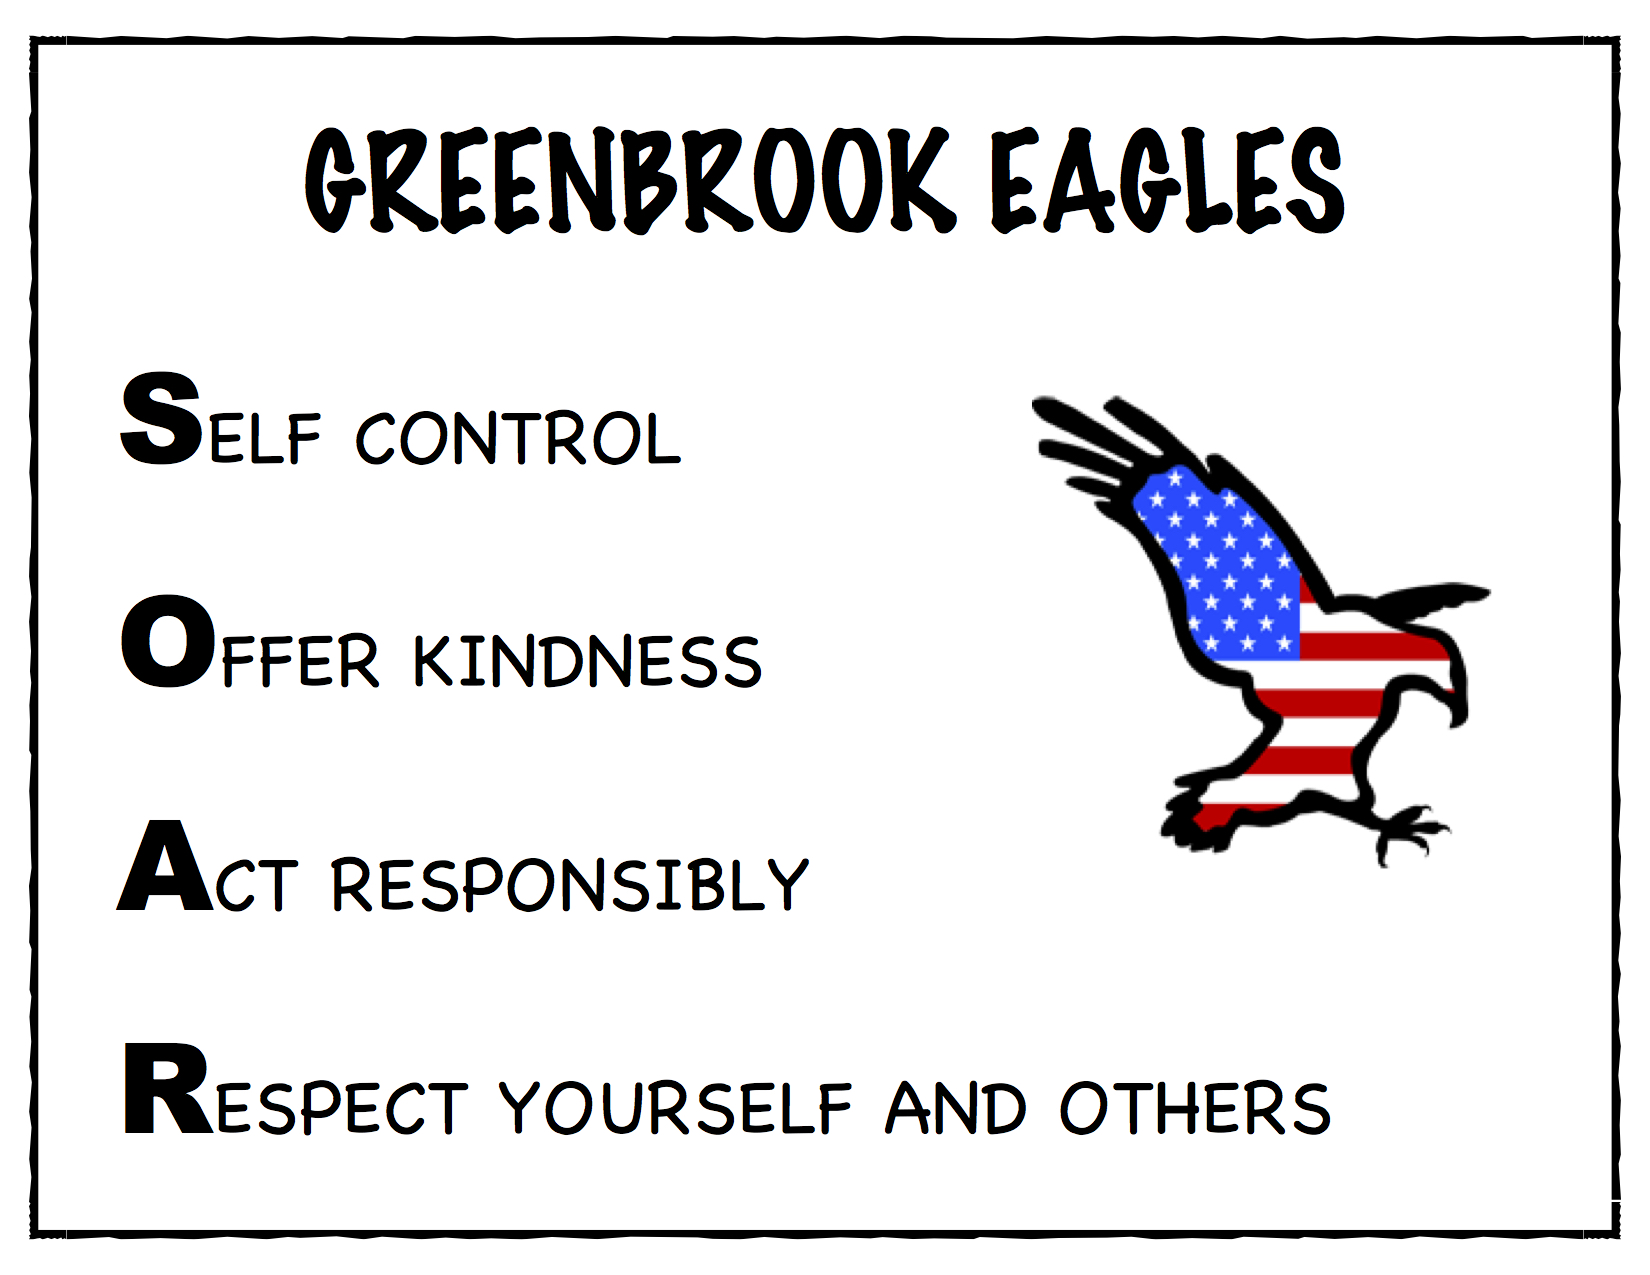 PBIS GREENBROOK EAGLES SOAR rev. 3